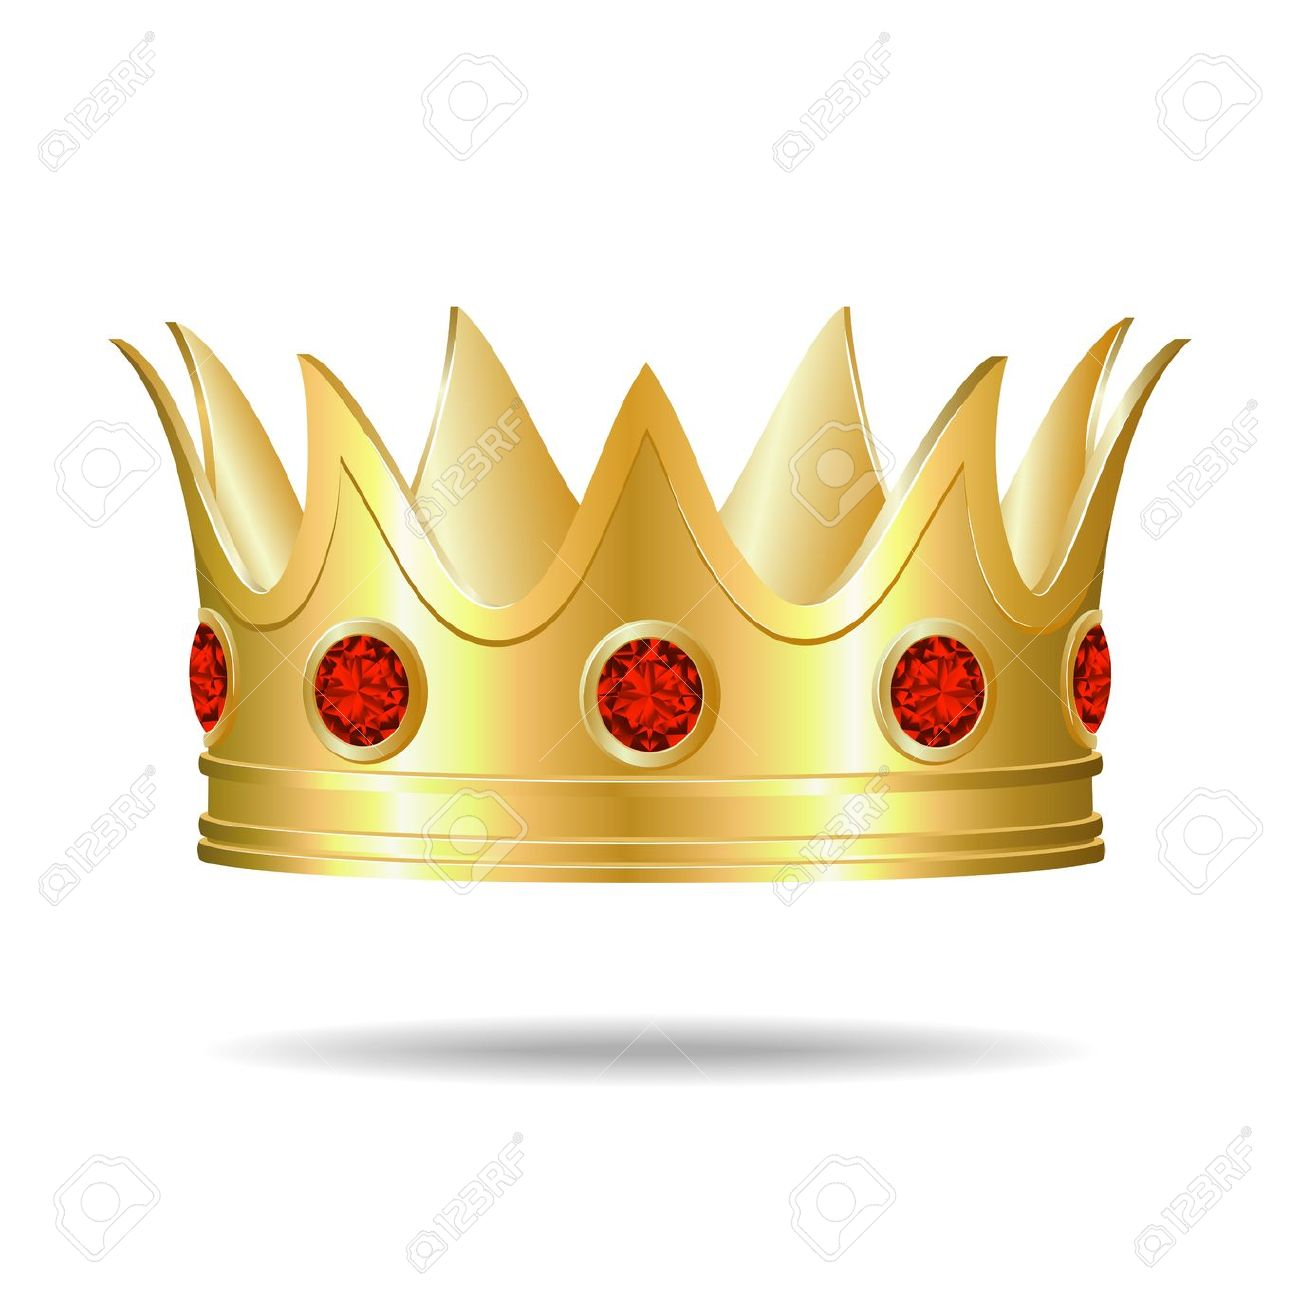 Gold Crown King Clipart Clipground